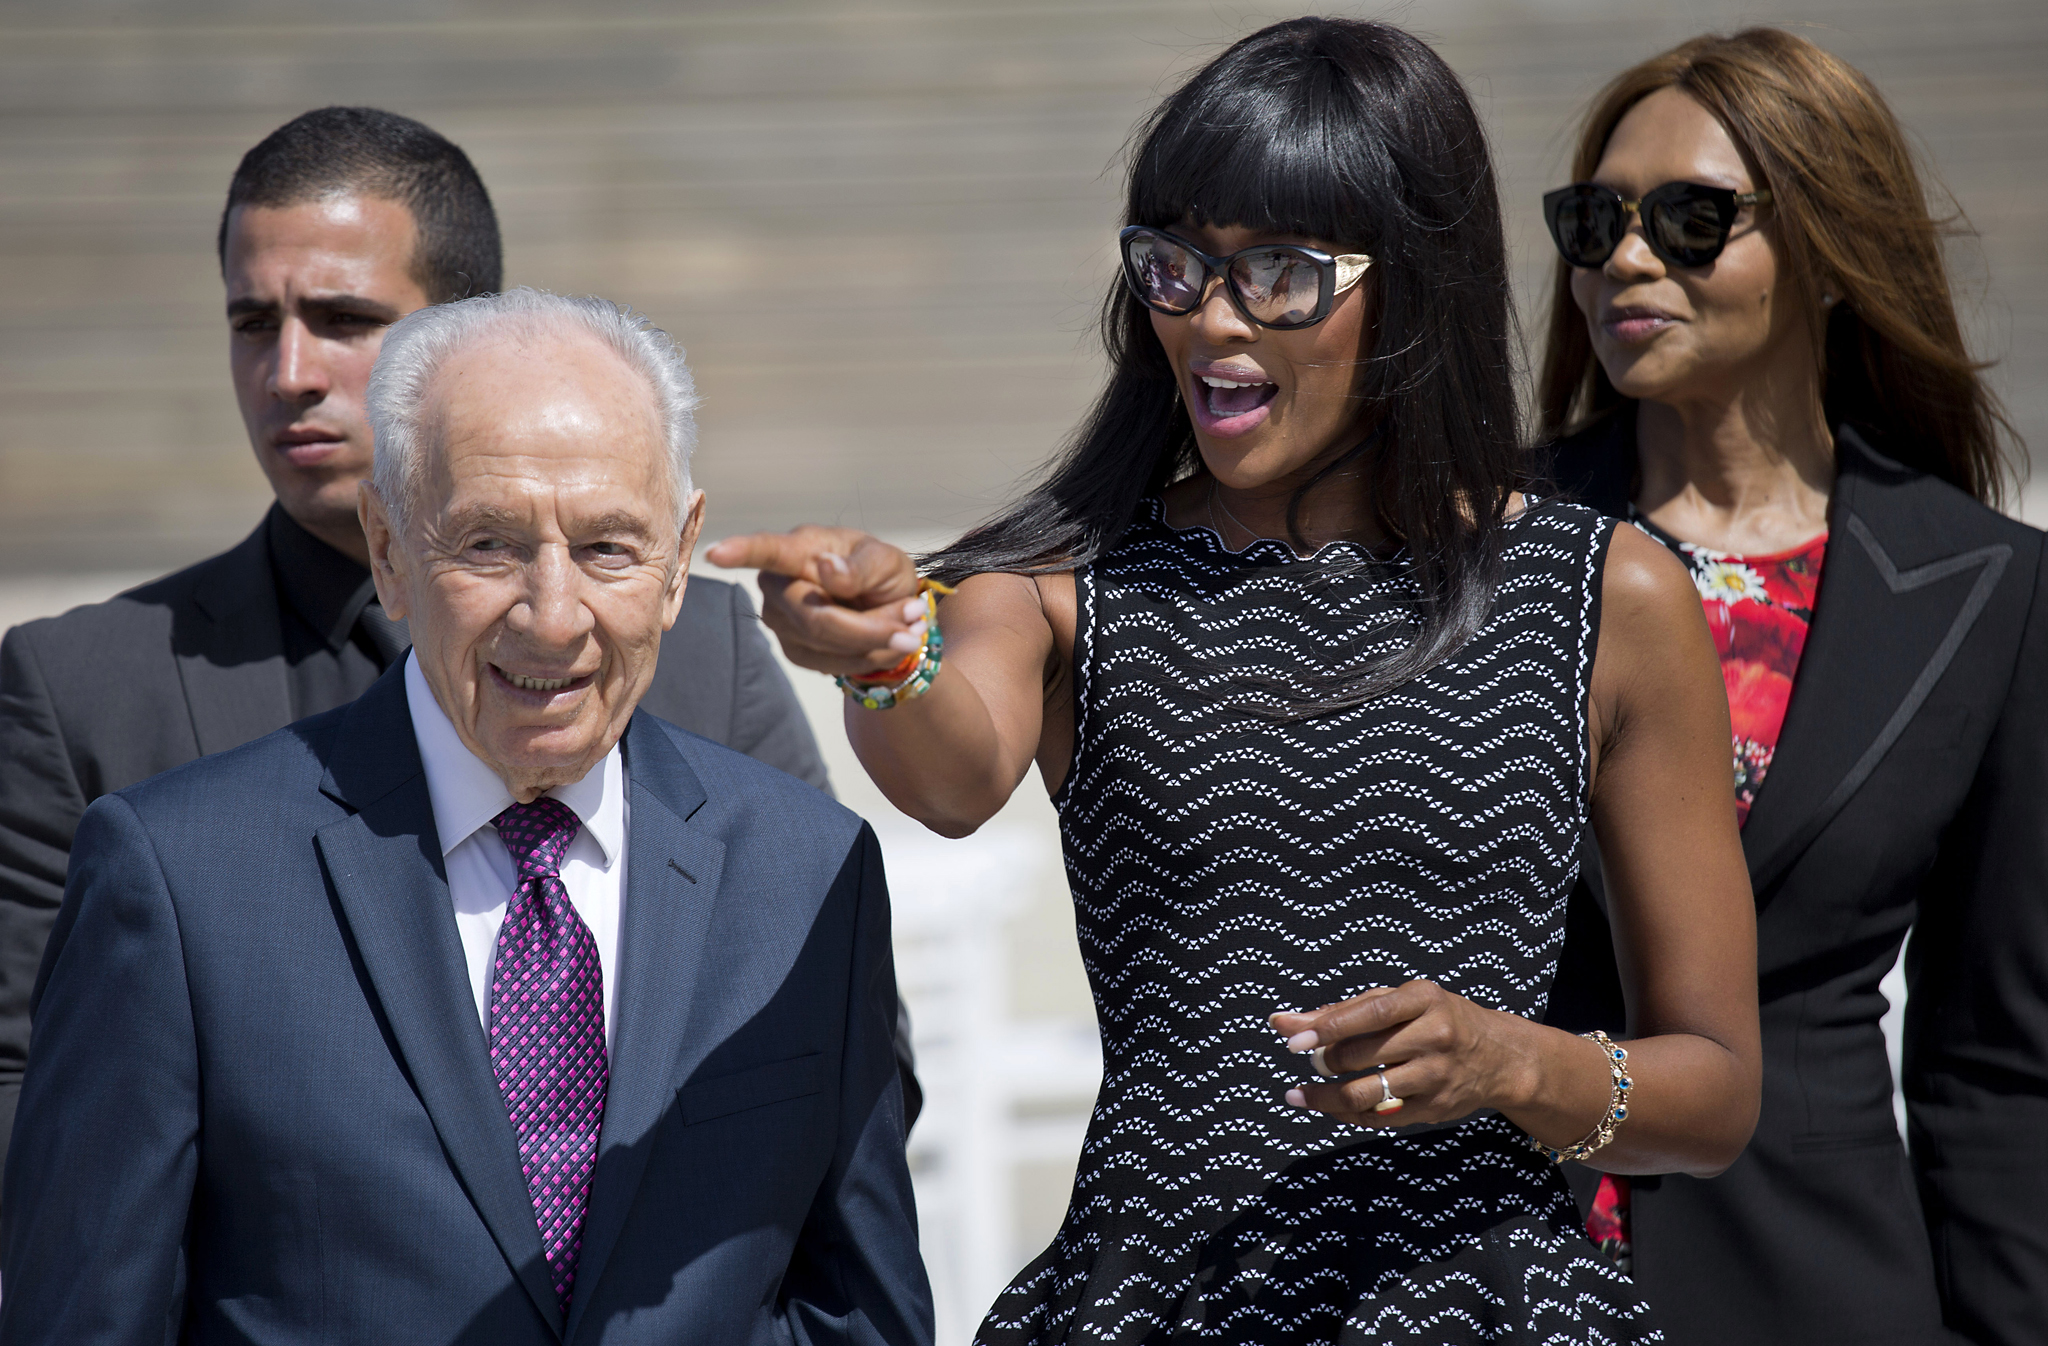 Shimon Peres , Naomi Campbell...Naomi Campbell, second right, meets with former Israeli President Shimon Peres during an event for International Women's Day in Tel Aviv, Israel, Tuesday, March 8, 2016. (AP Photo/Ariel Schalit)